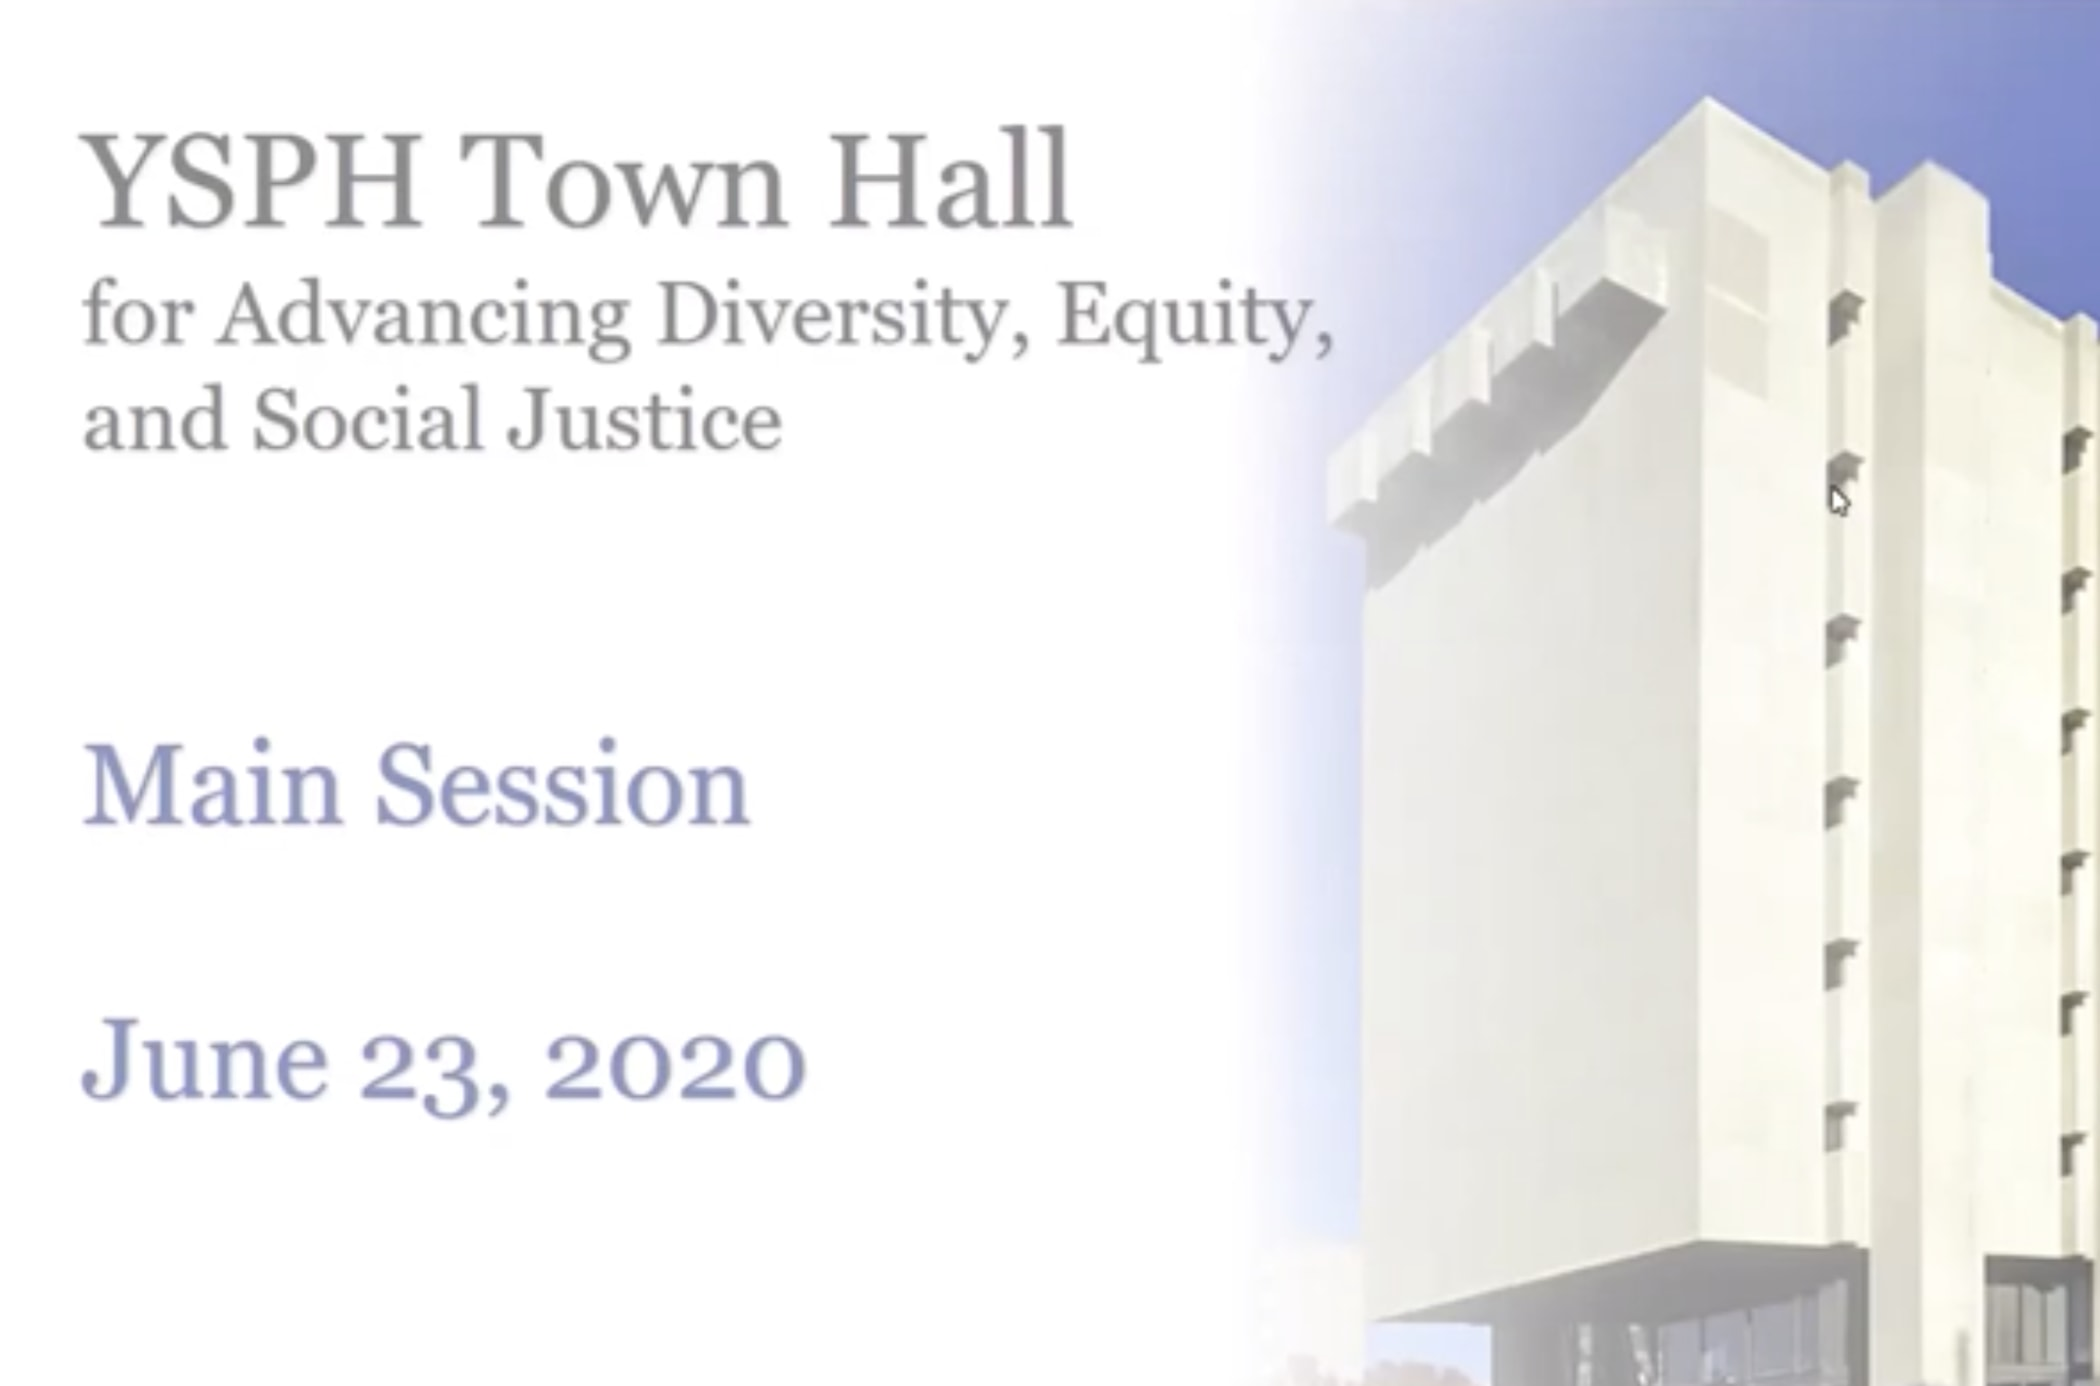 YSPH Town Hall for Advancing Diversity, Equity and Social Justice